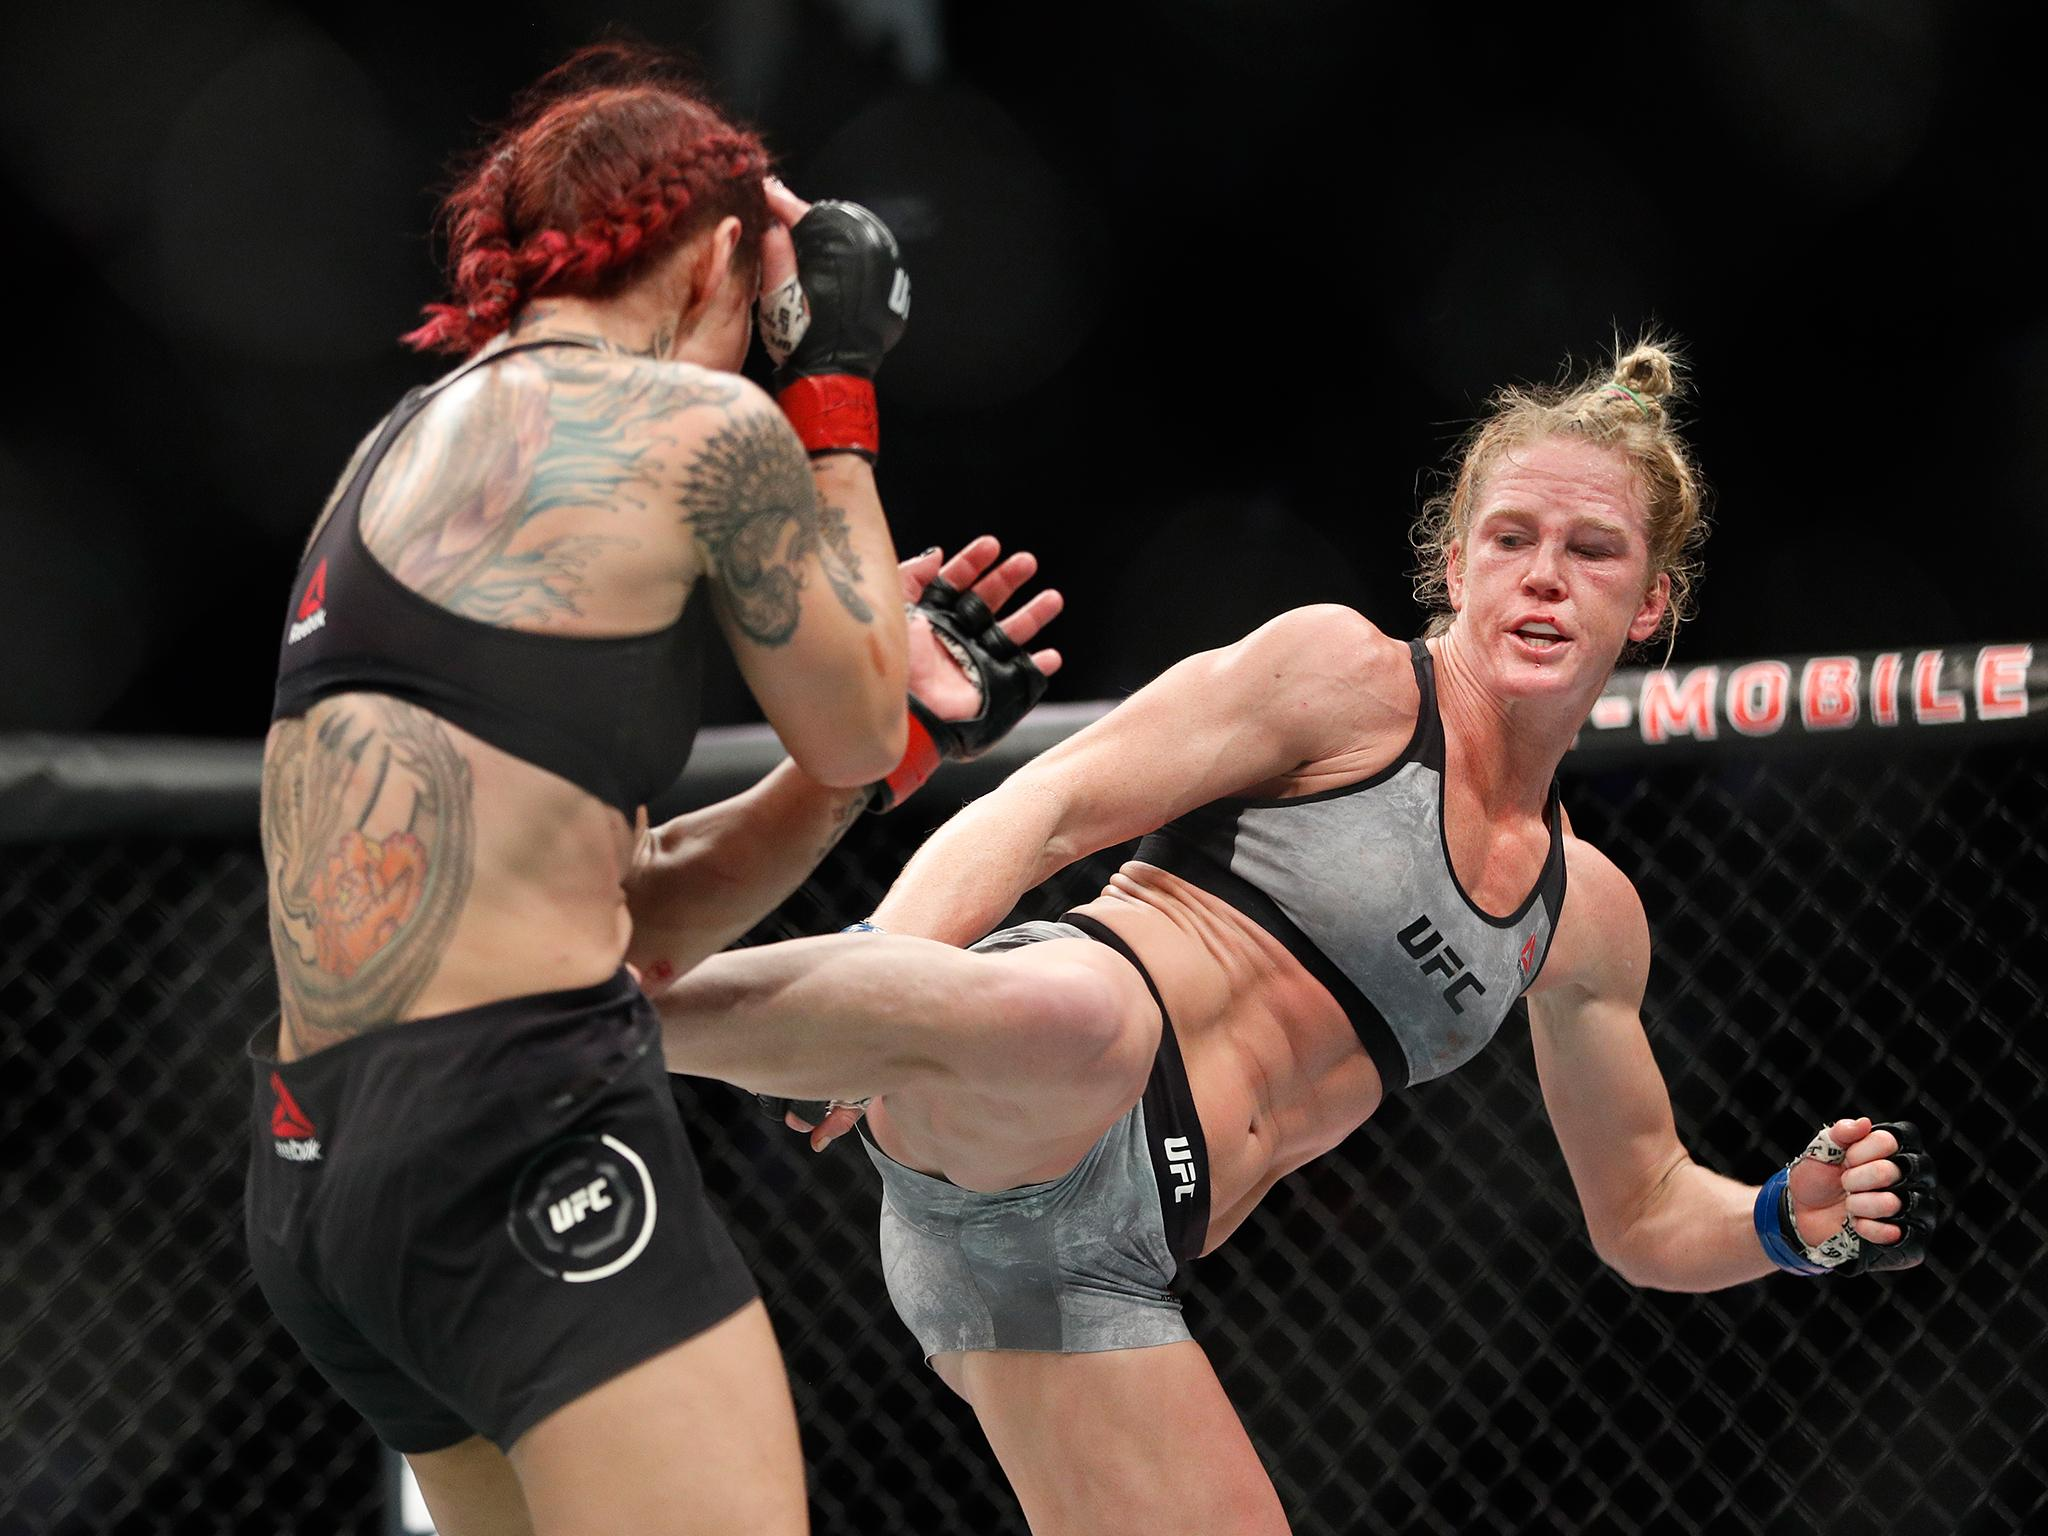 ufc 219 results cris cyborg beats holly holm as khabib nurmagomedov